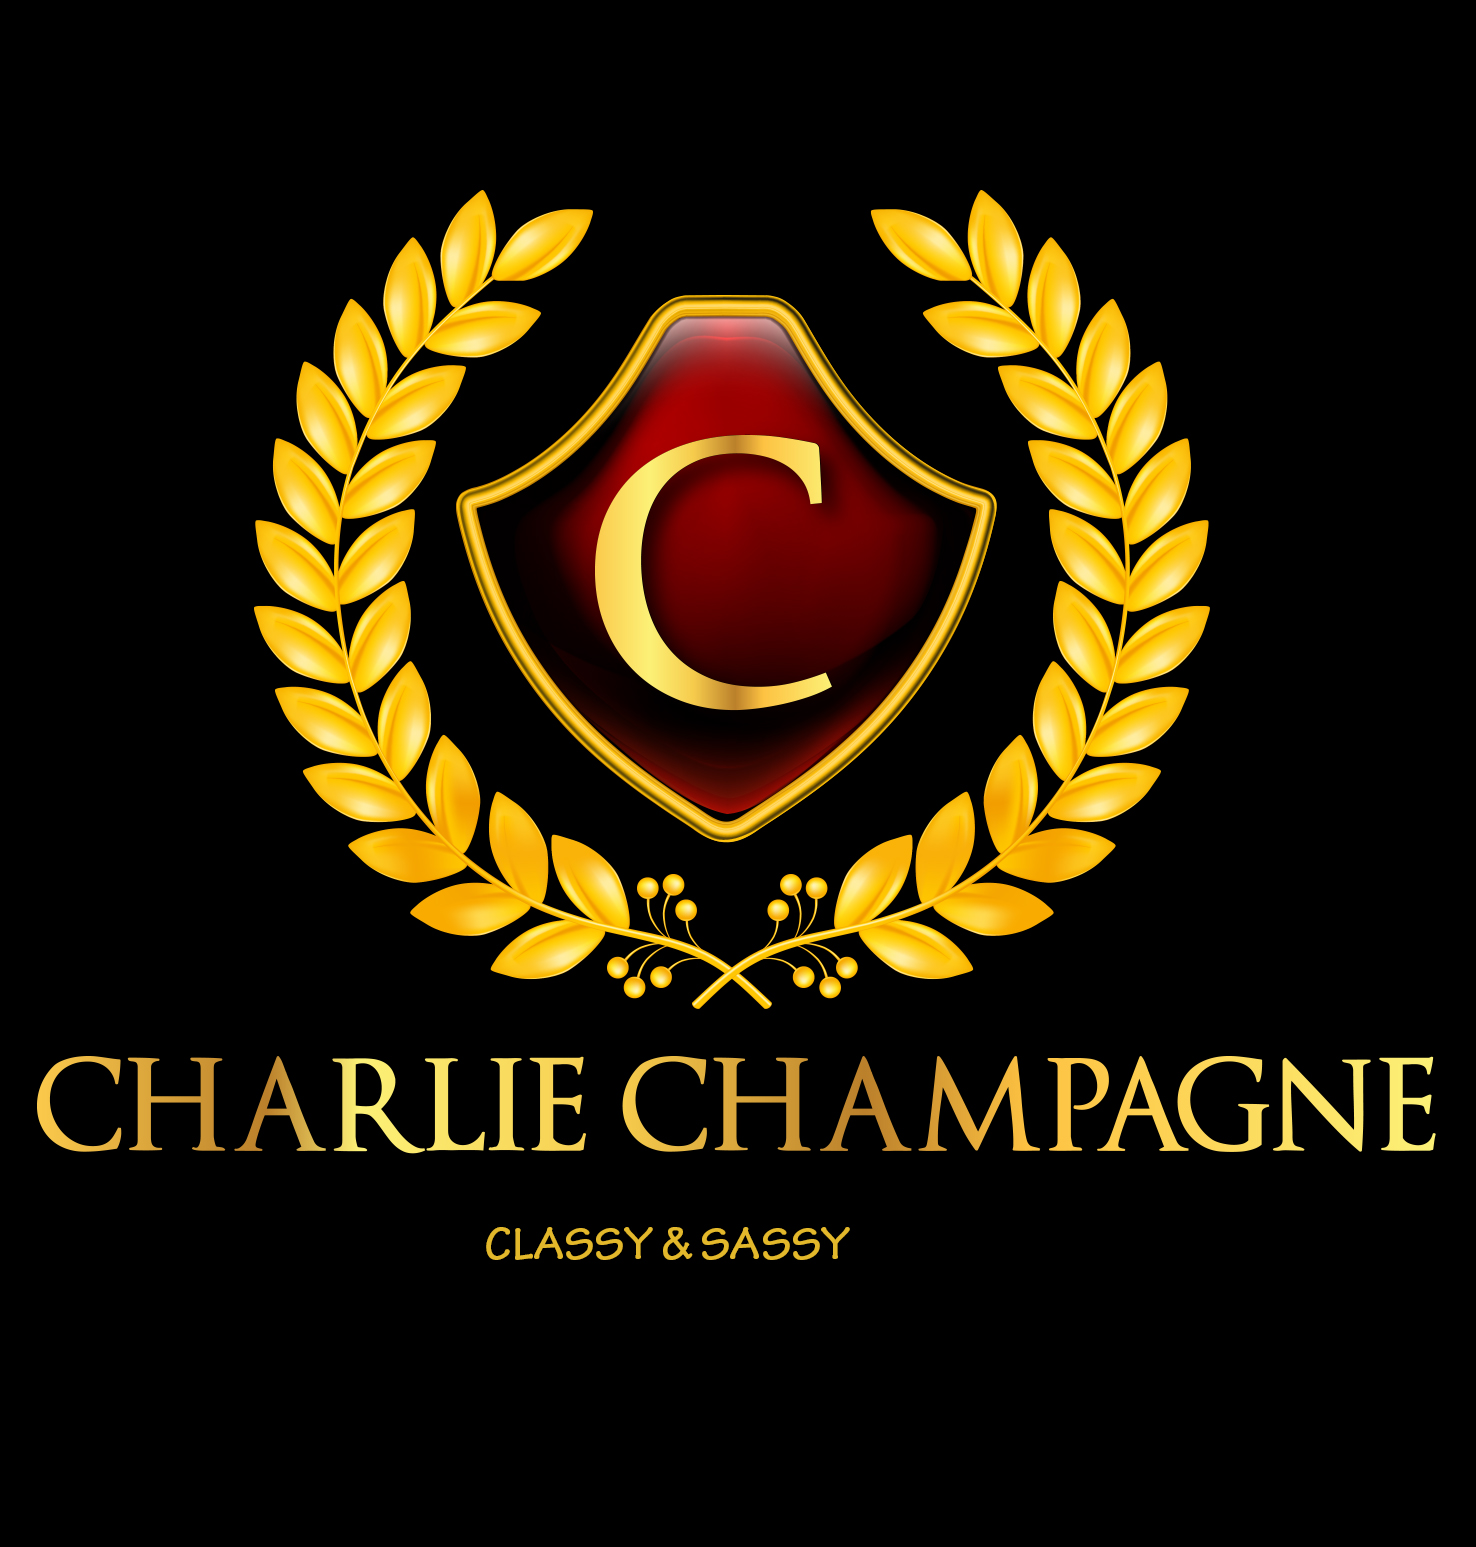 Charlie Champagne